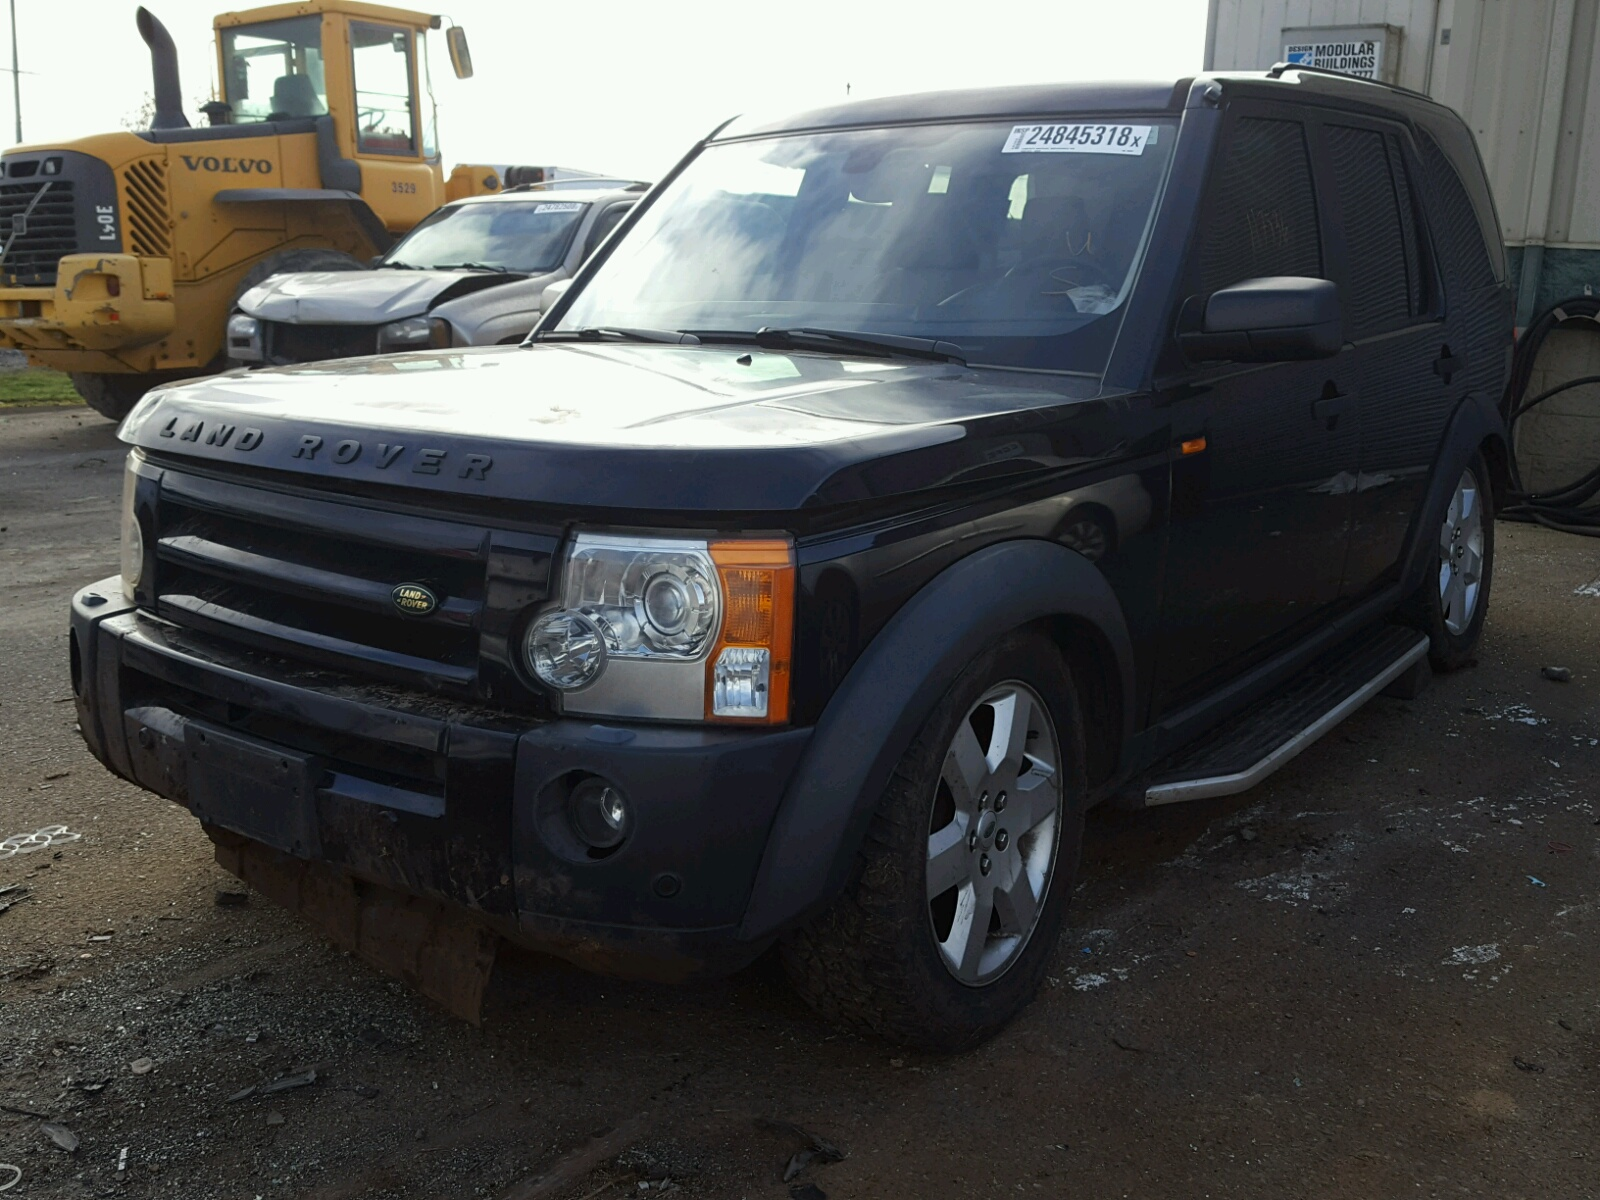 for title copart of auctions en right lot az land view silver hse online sale phoenix cert landrover auto salvage rover carfinder in on